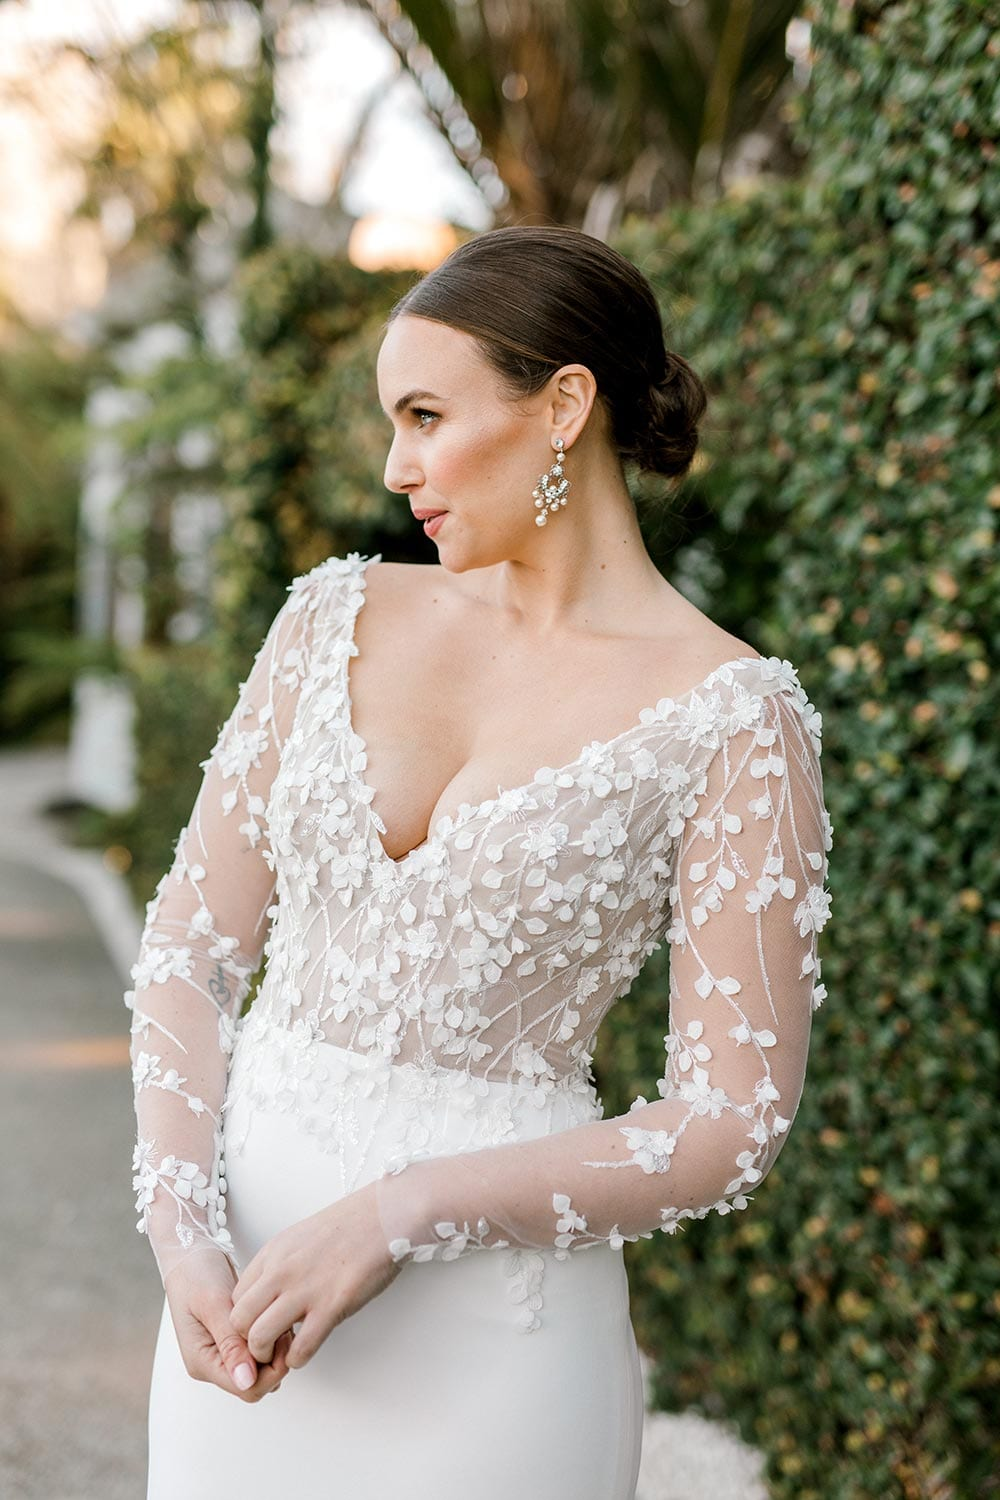 Celeste Wedding Dress from Vinka Design. Gorgeous form fitting stretch fabric wedding dress. The bodice is nude & semi-sheer, featuring 3-D beaded leaf lace, a deep V-neckline and a low V-shaped back with long sleeves. Close up detail of bodice, photographed at Tui Hills by Emmaline Photography.